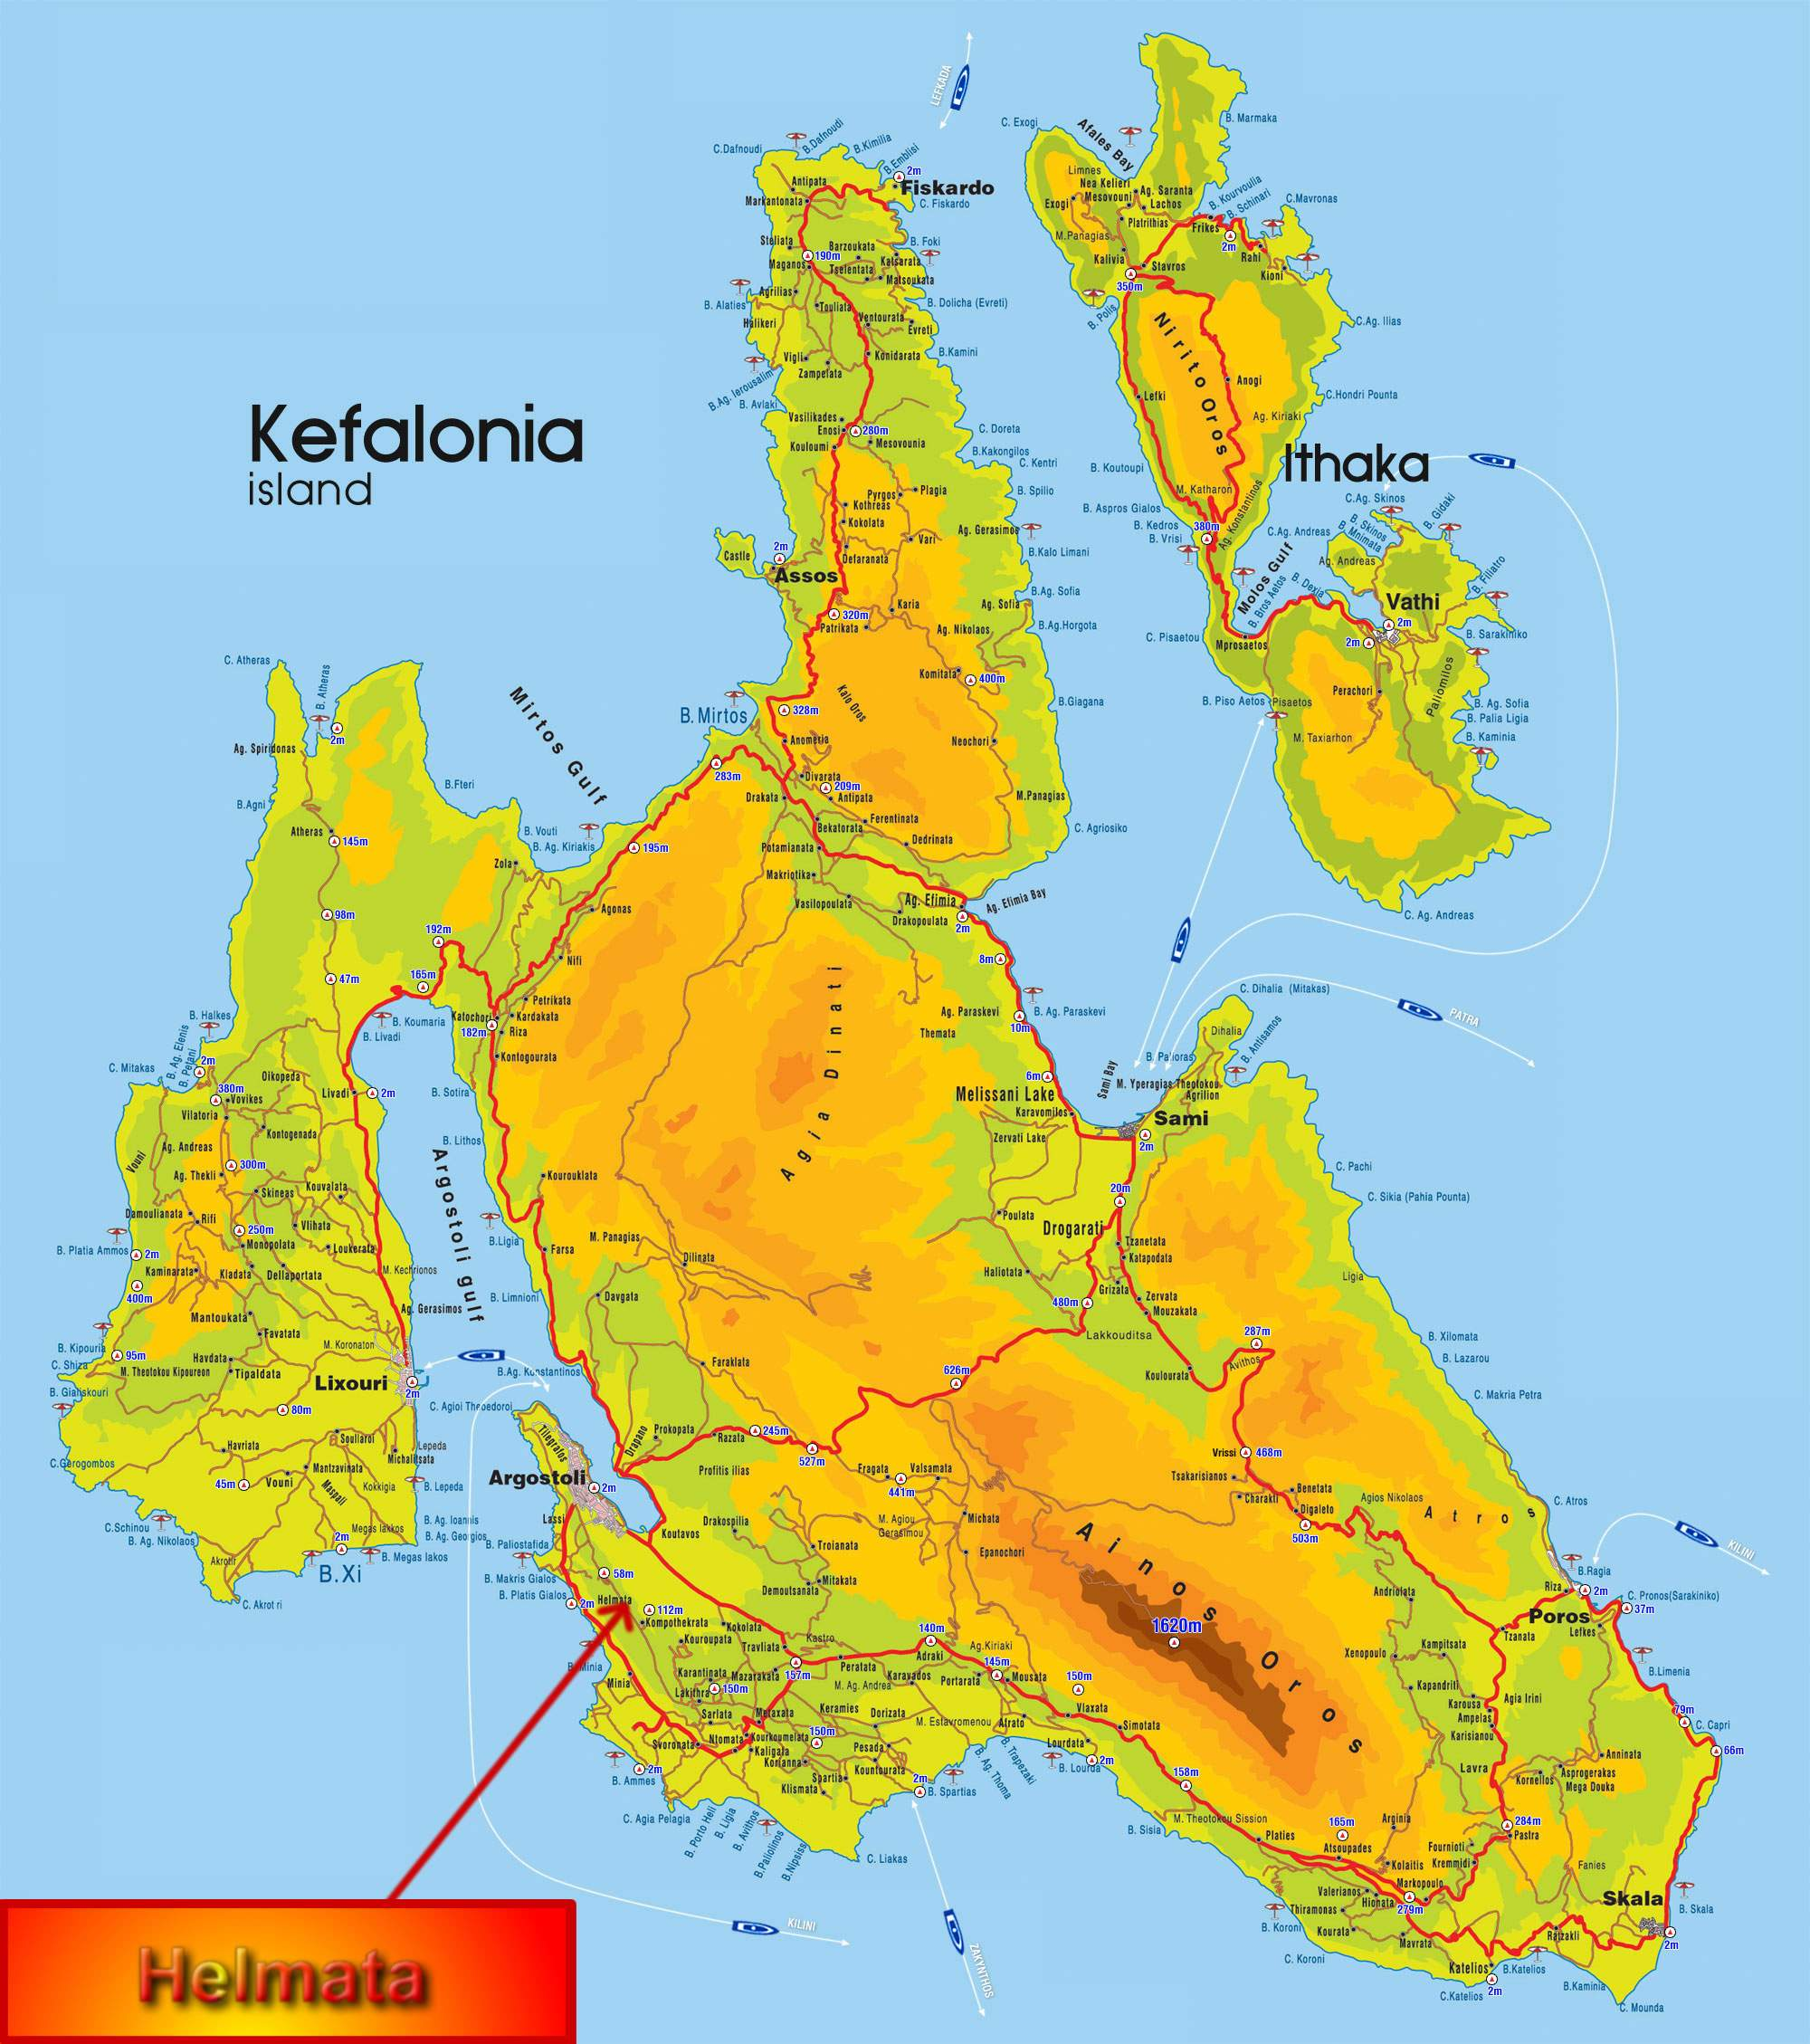 Kefalonia Island Map Large Kefallonia Maps for Free Download and Print | High